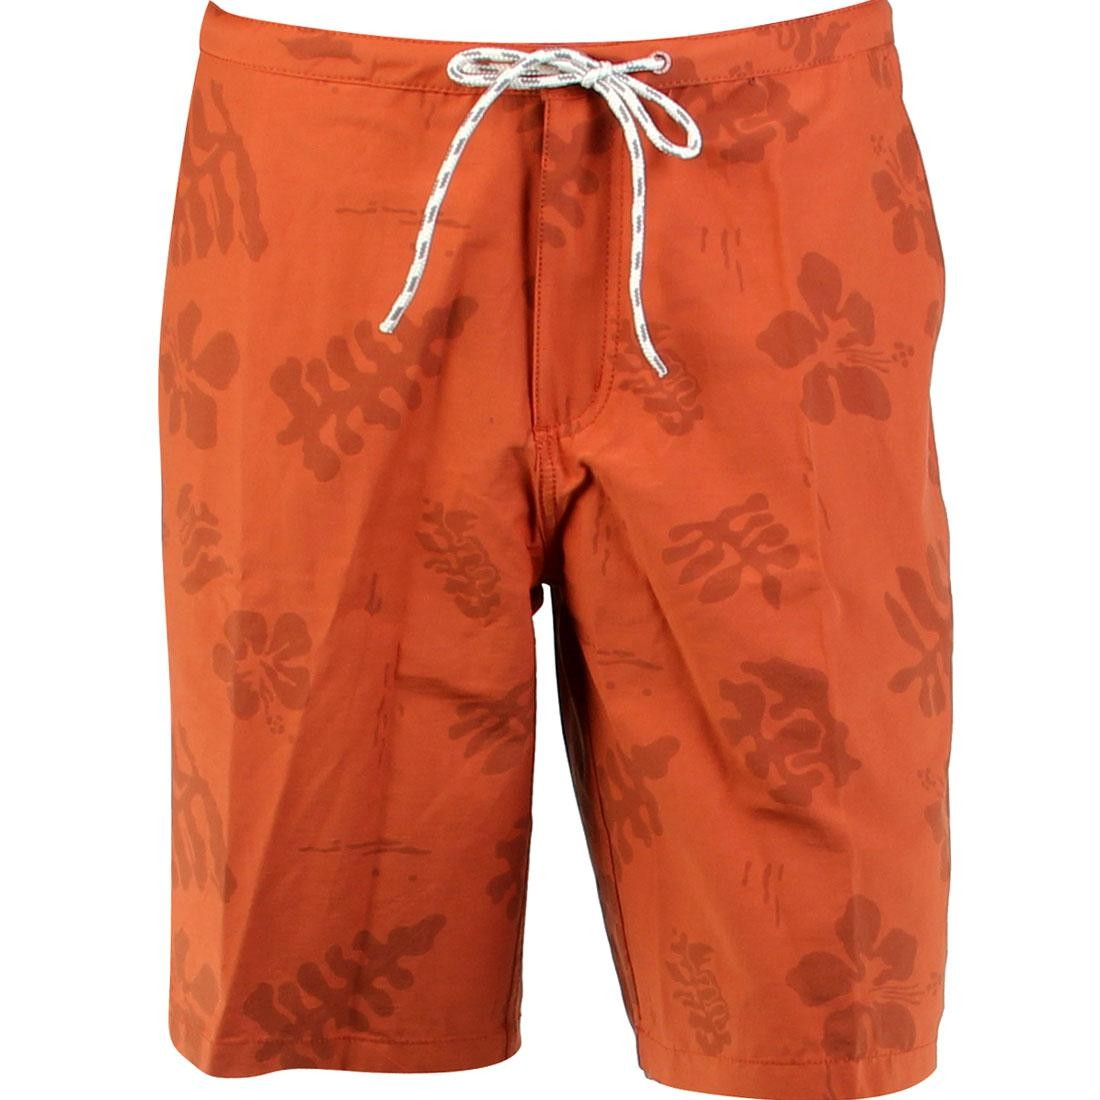 Vans River Jetty Surf N Shorts (red / rust)